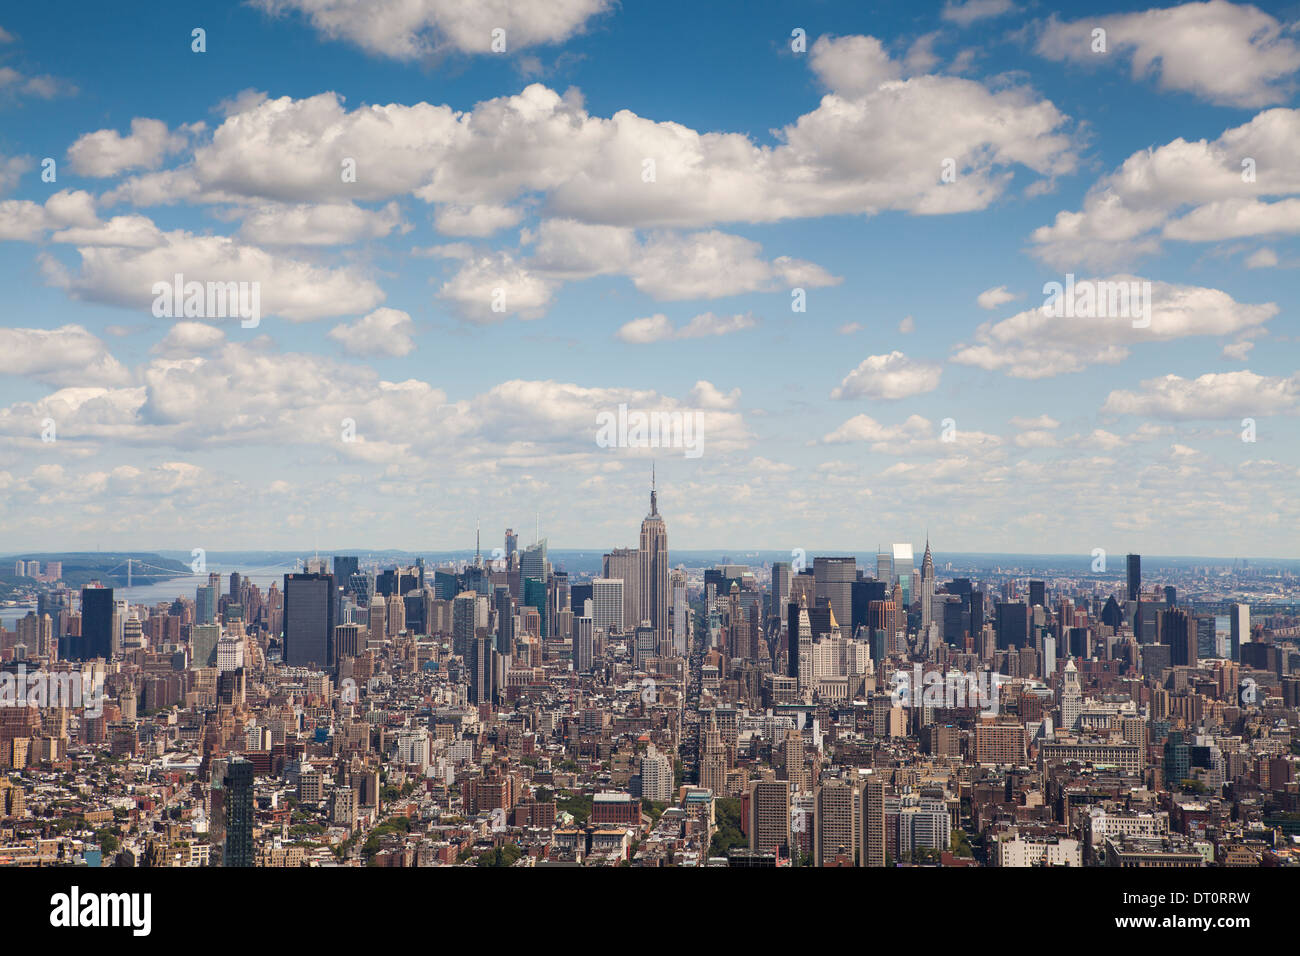 View of New York City looking north from 4 World Trade Center - Stock Image